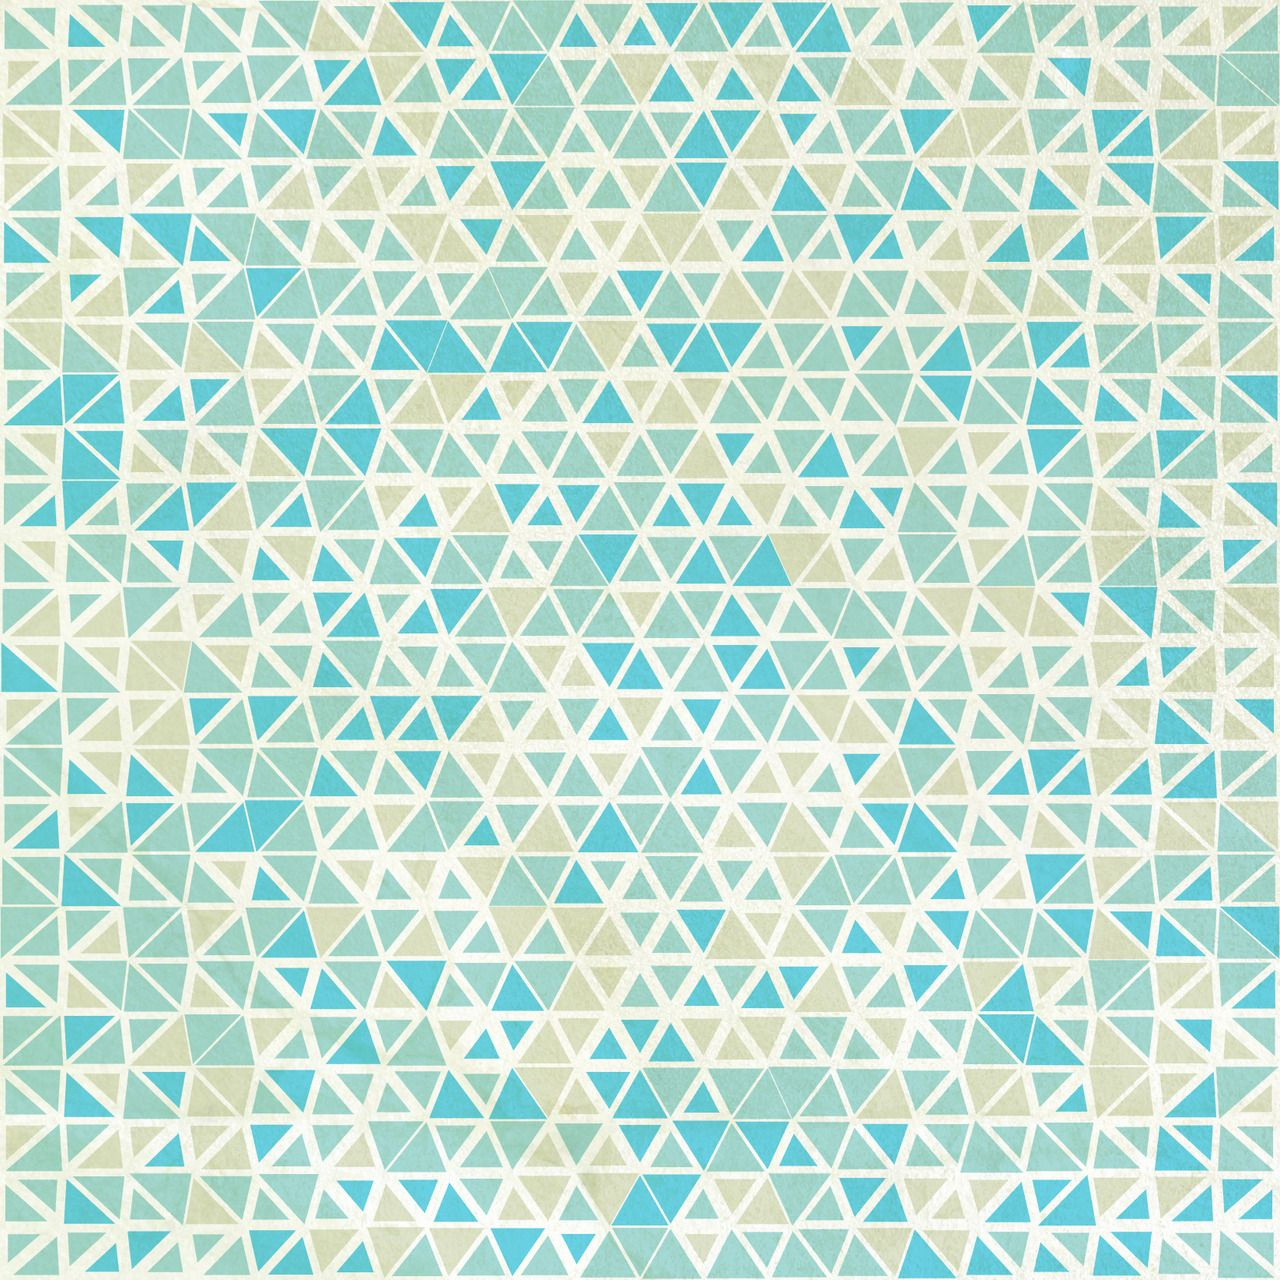 tumblr backgrounds patterns - Google zoeken | •Beautiful ...